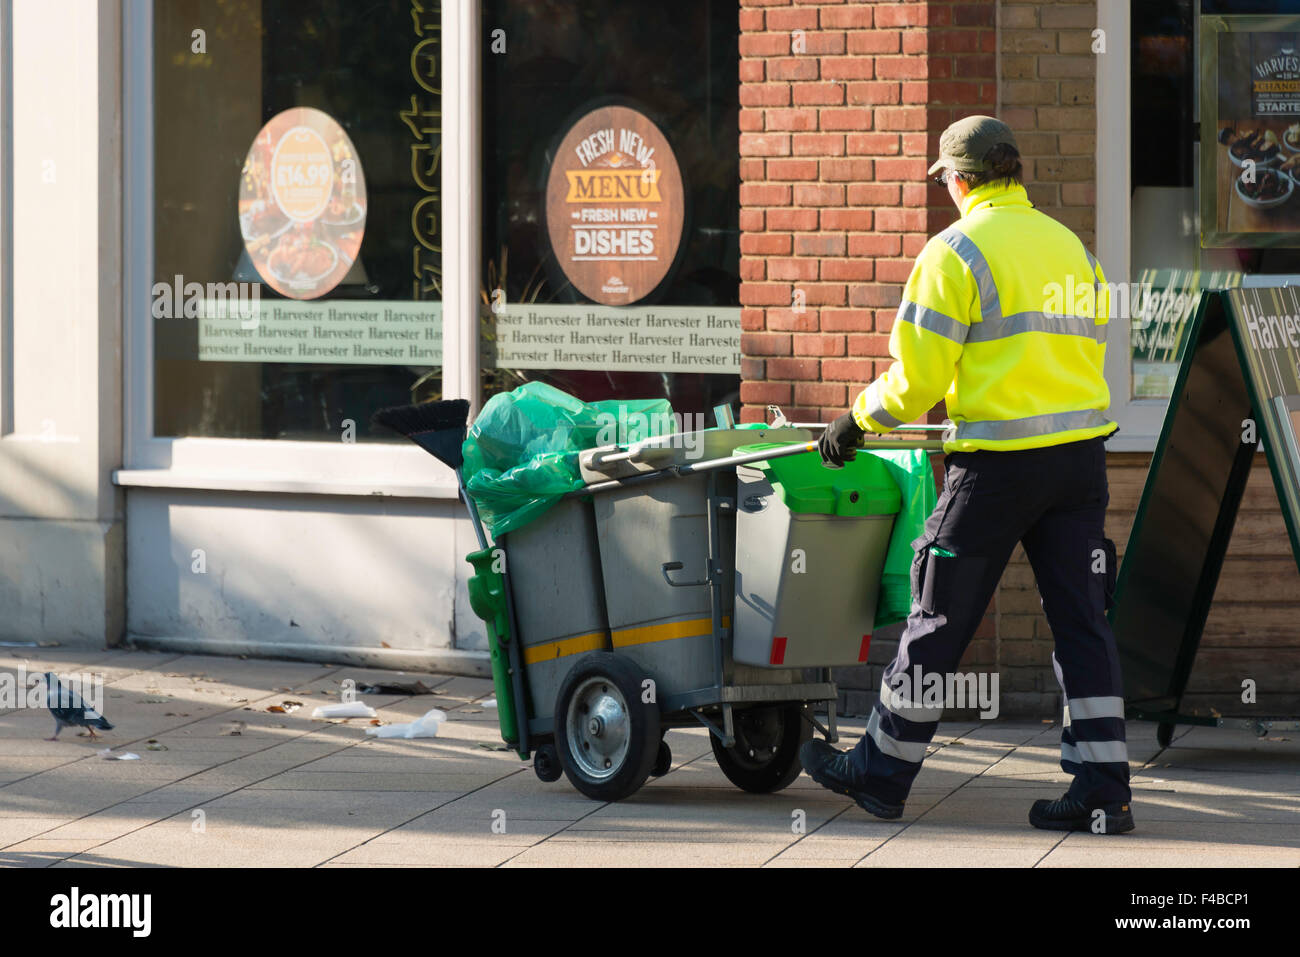 Street cleaner in High Street, Staines-upon-Thames, Surrey, England, United Kingdom Stock Photo